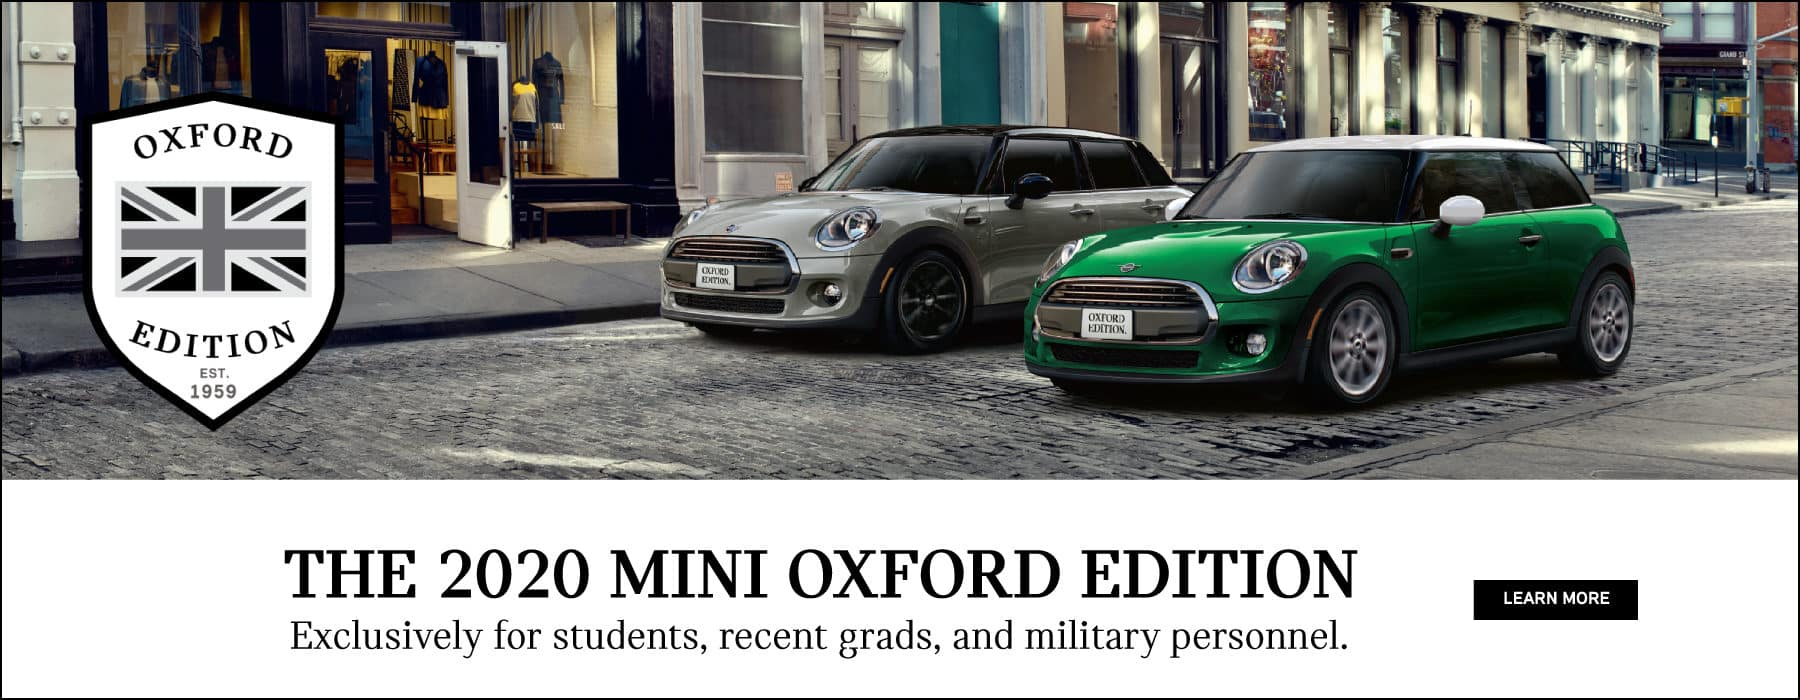 2020 MINI OXFORD EDITION. Exclusively for students, recent grads, and military personnel. Click to learn more.